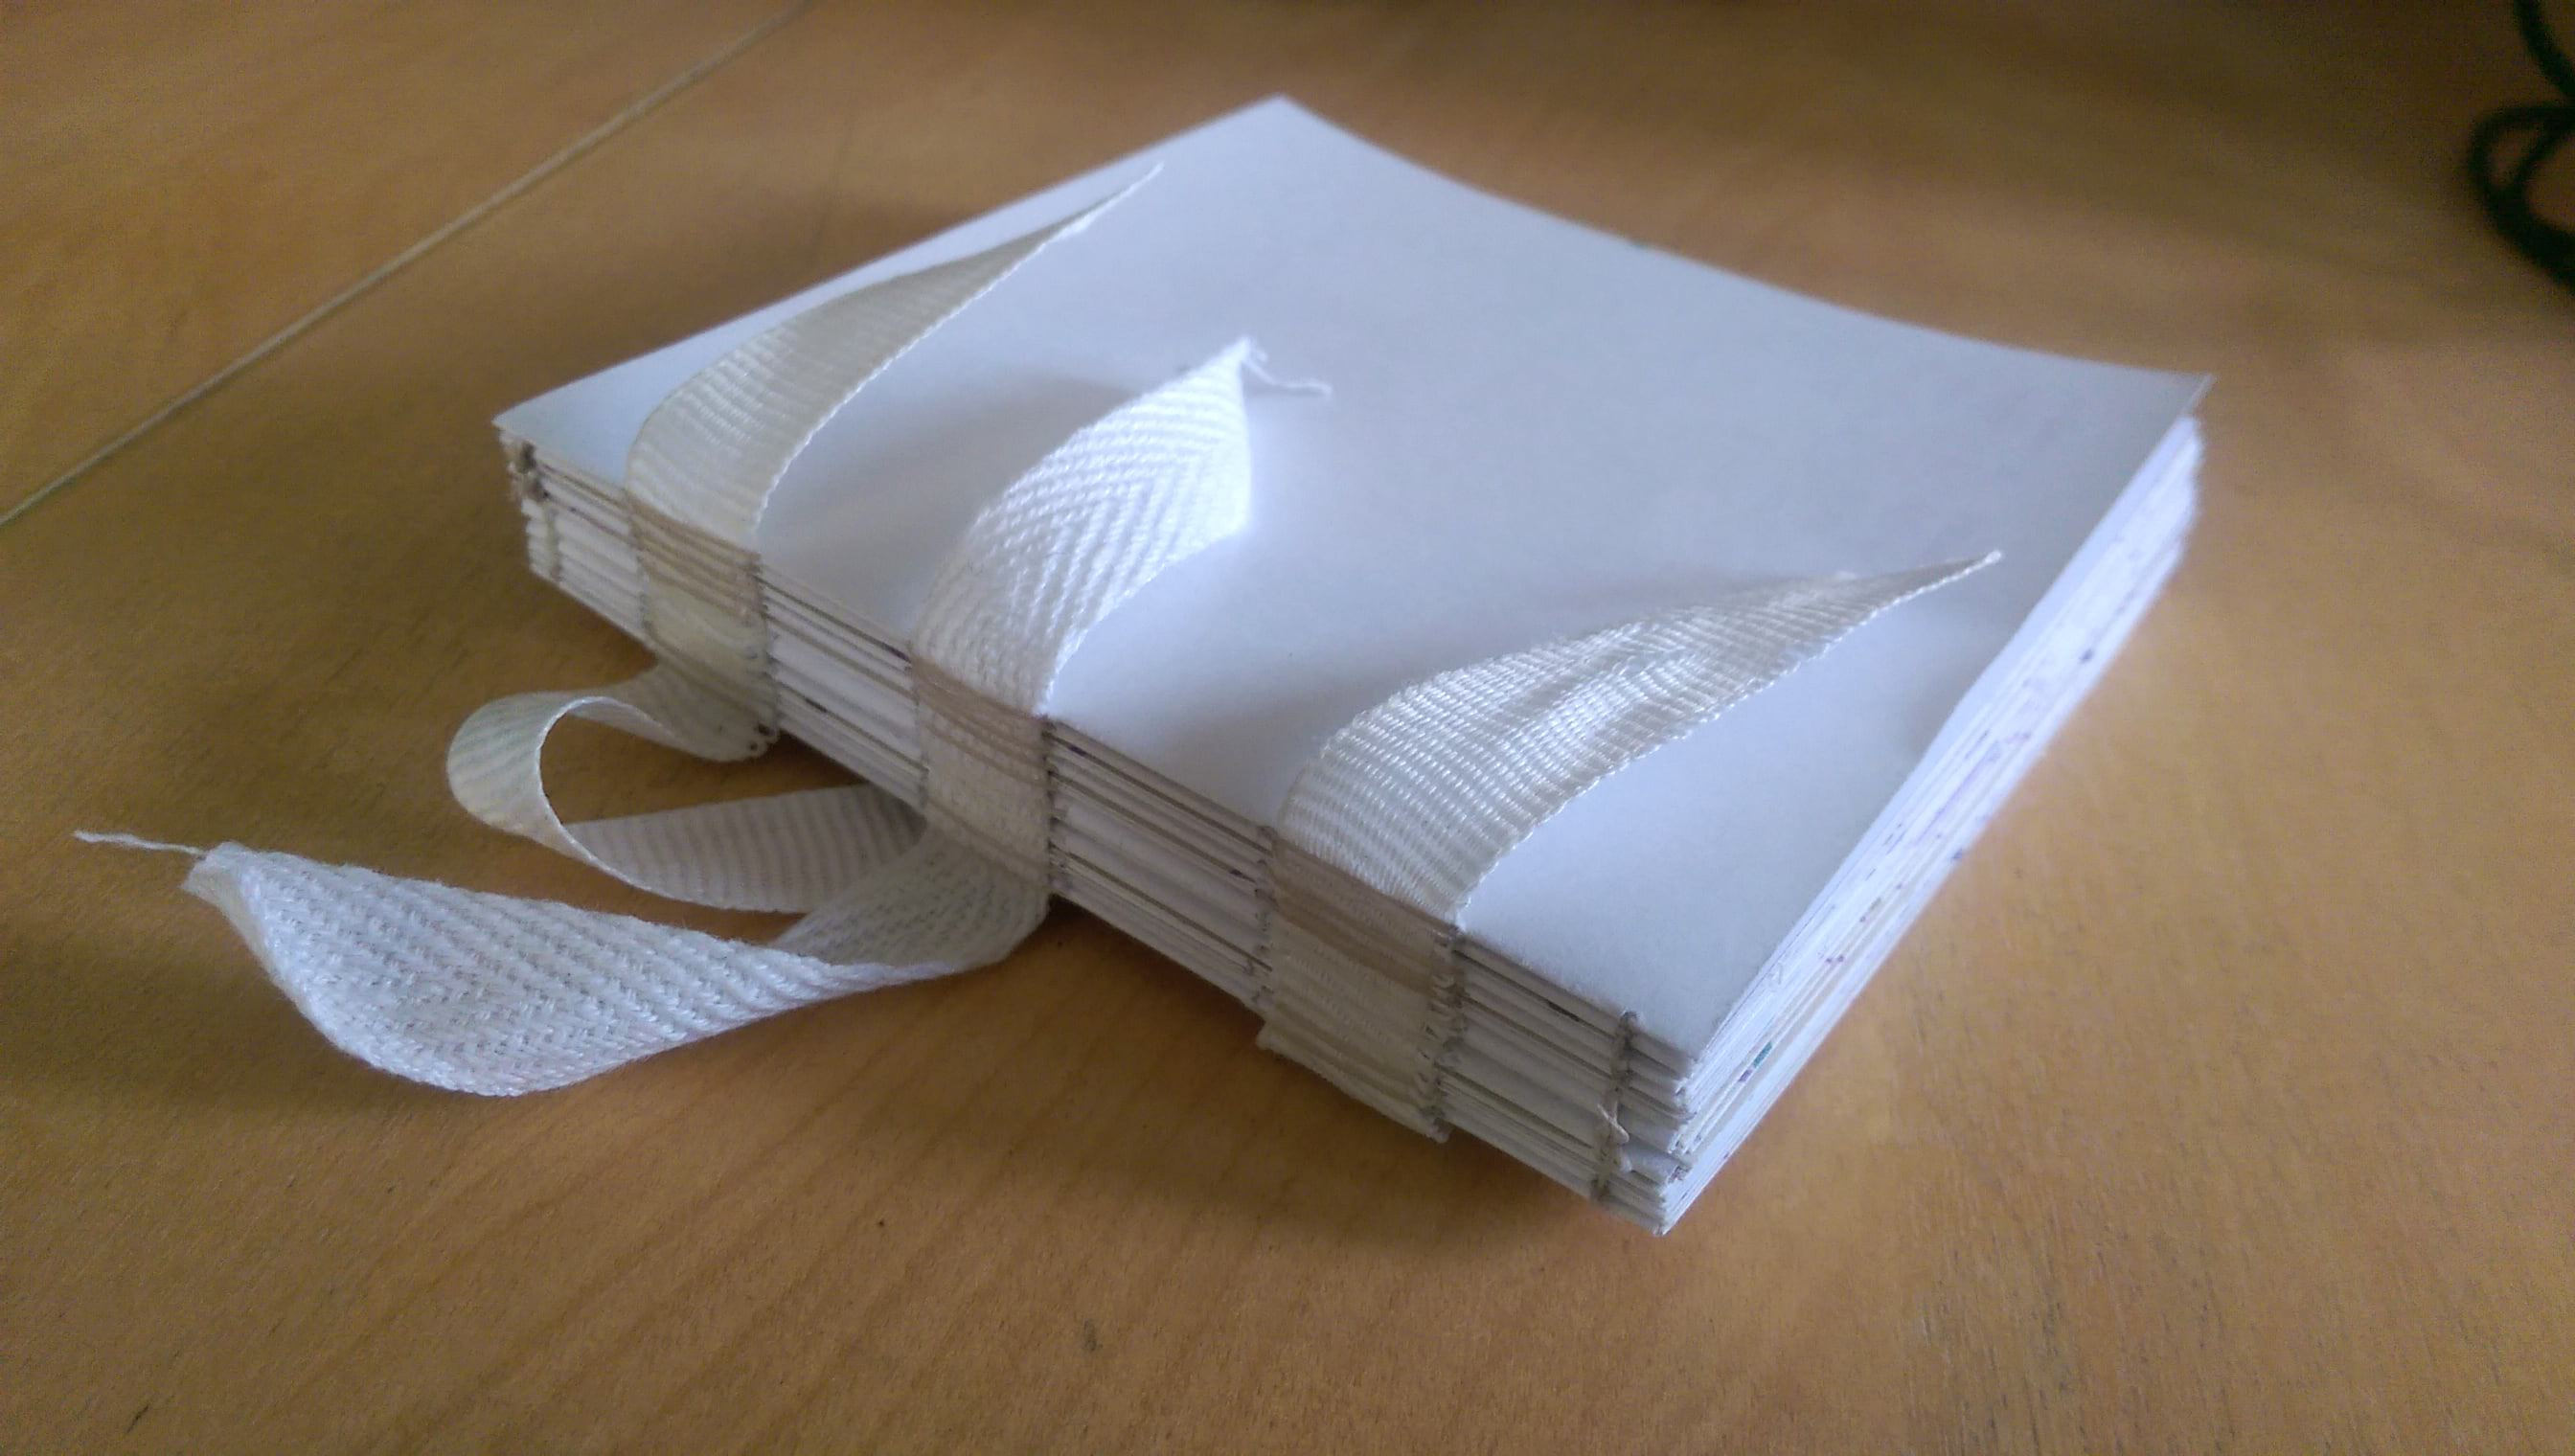 The atlas pages all sewn together